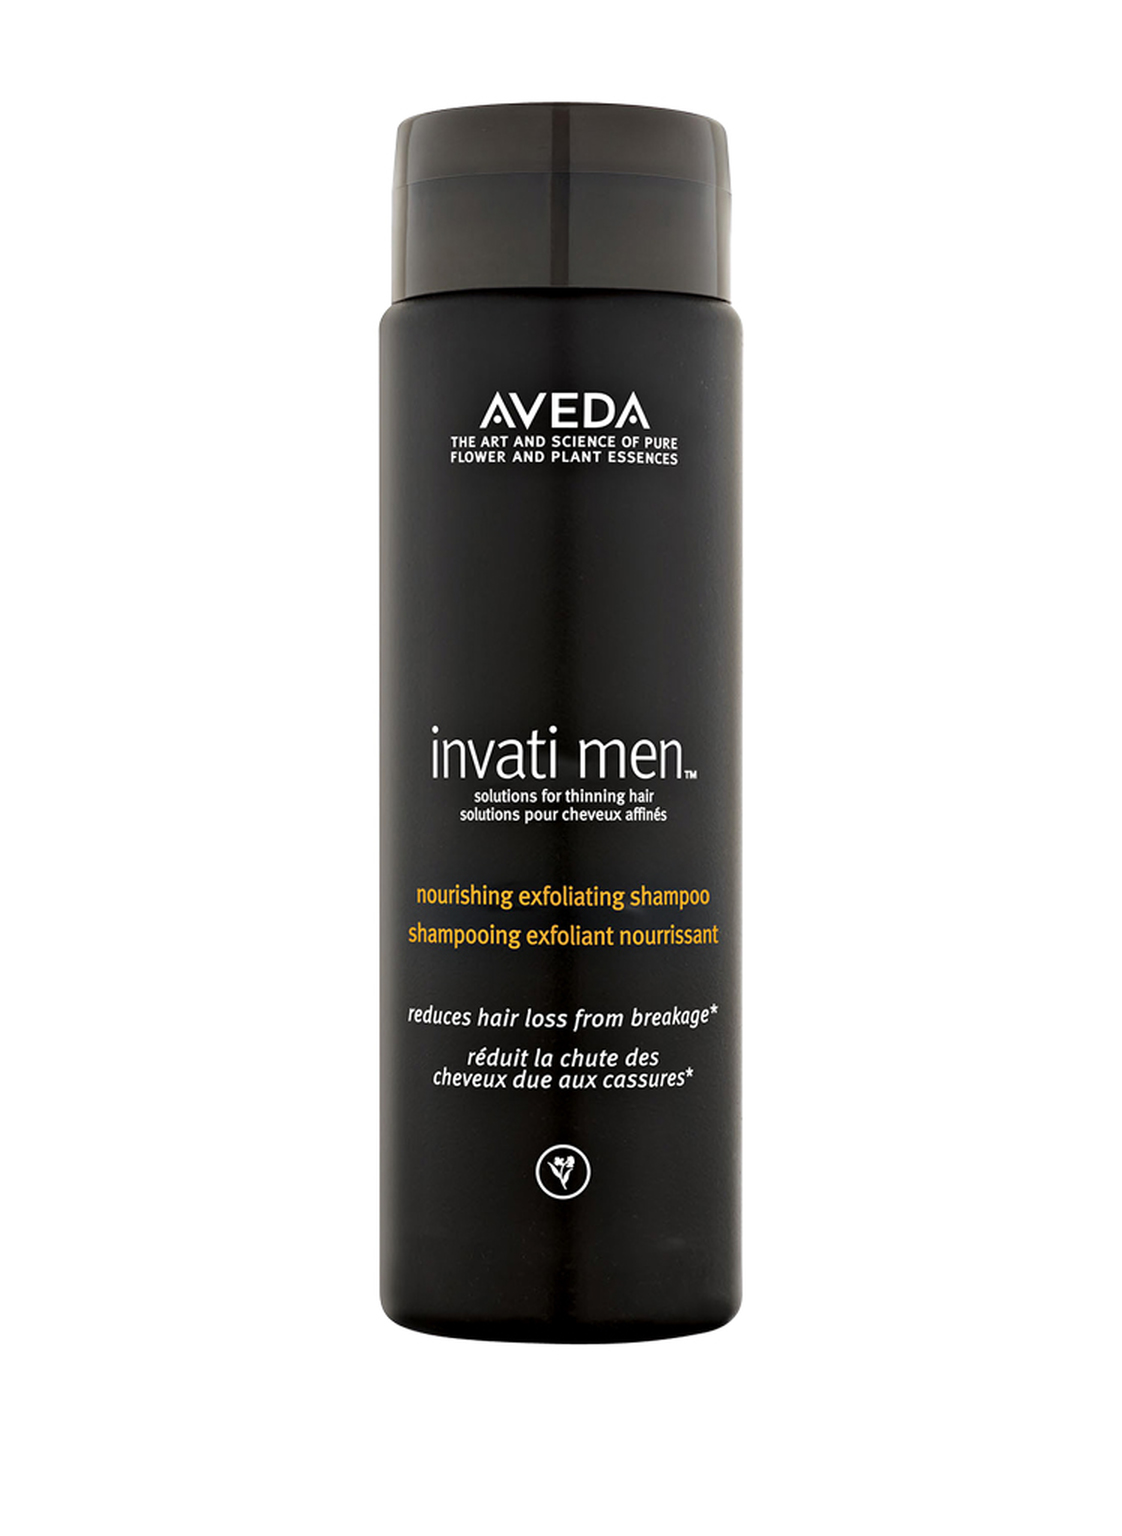 Aveda Invati Men Nourishing Exfoliating Shampoo 250 ml von AVEDA